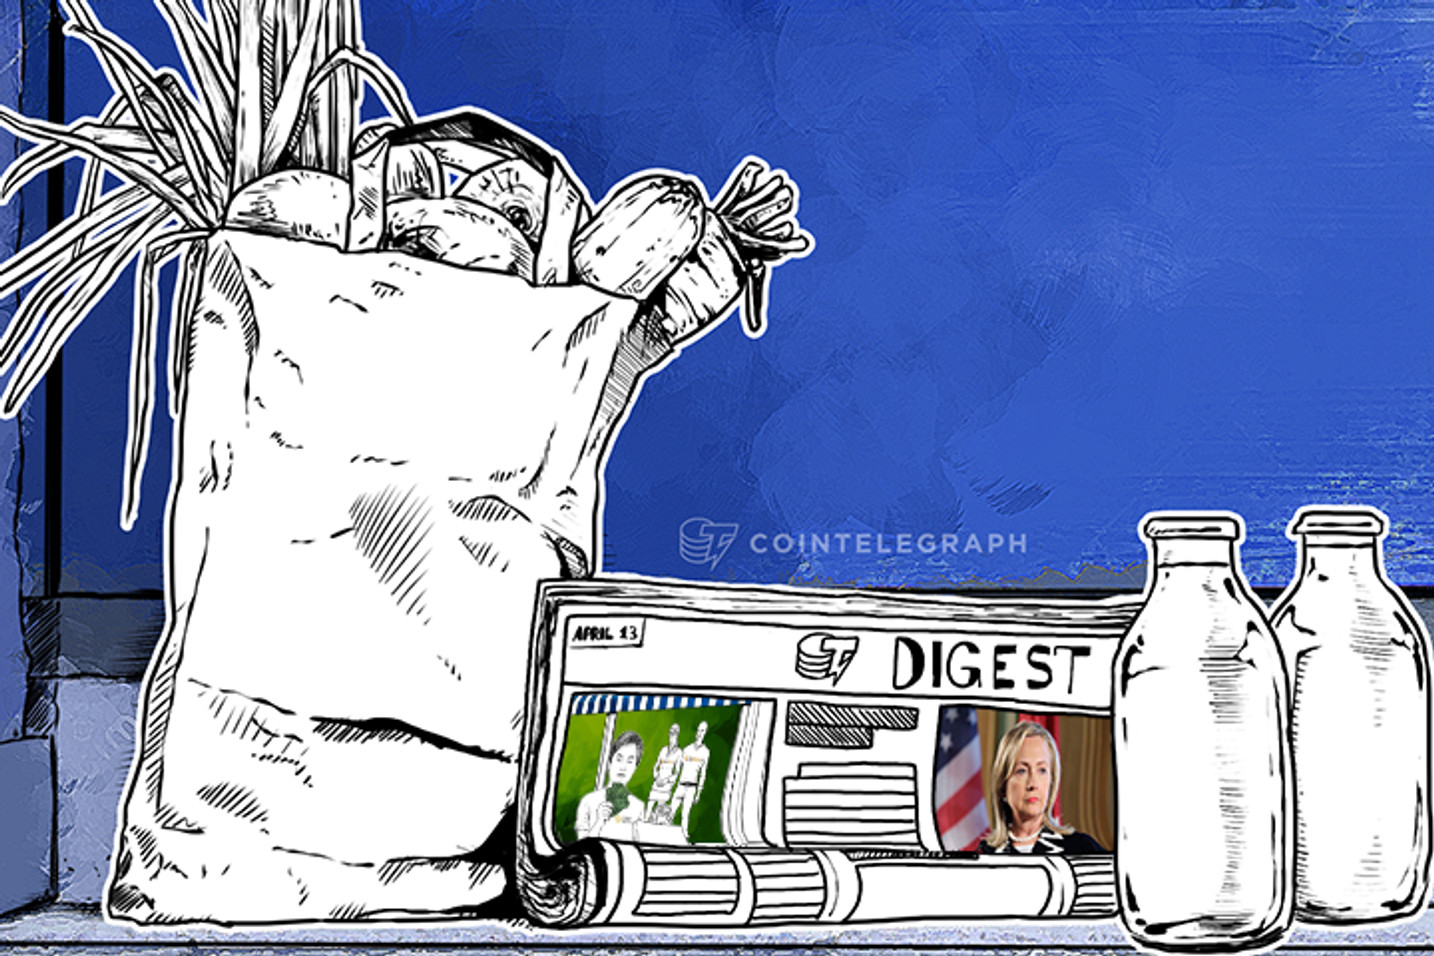 APR 13 DIGEST: Hillary Clinton Doesn't Want Bitcoins, BTCGAW.com Reported to FBI